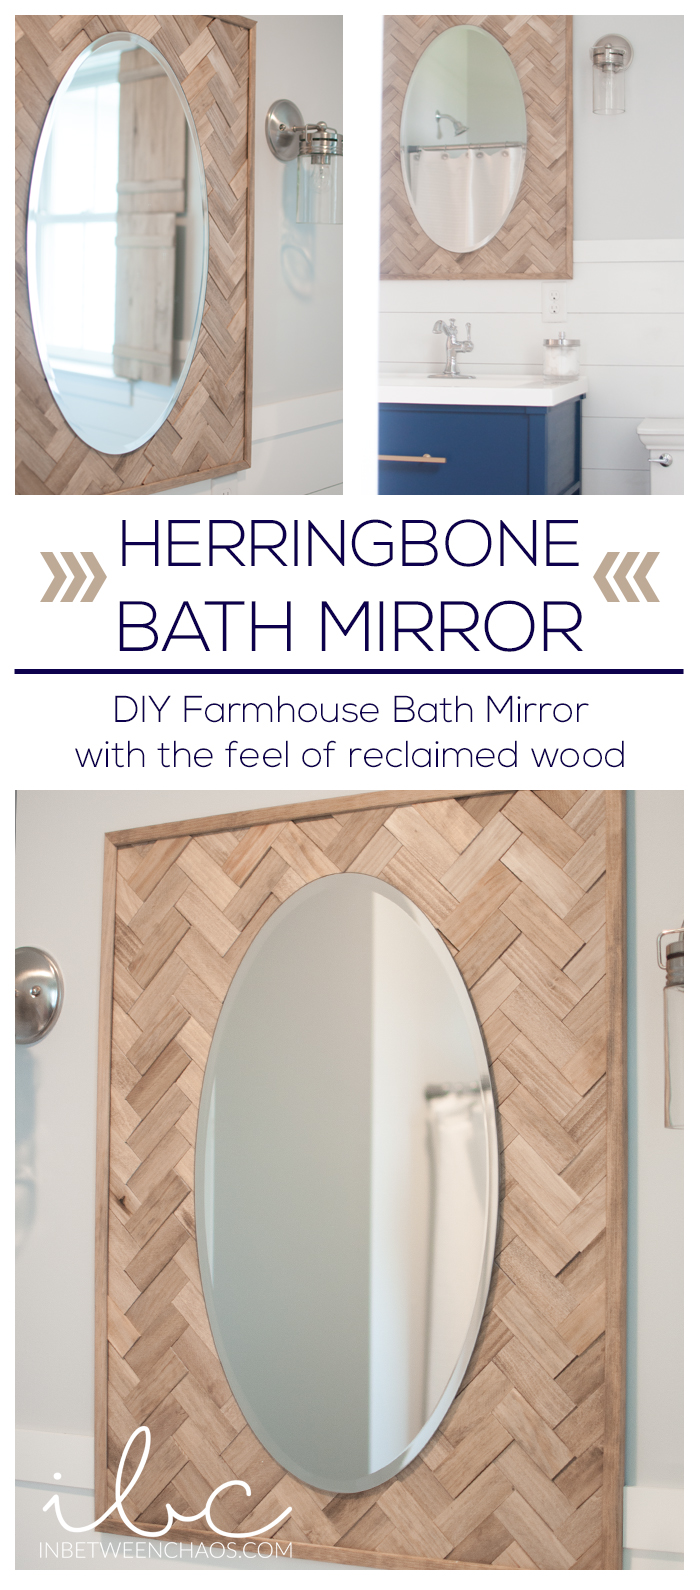 DIY Farmhouse Herringbone Mirror | inbetweenchaos.com